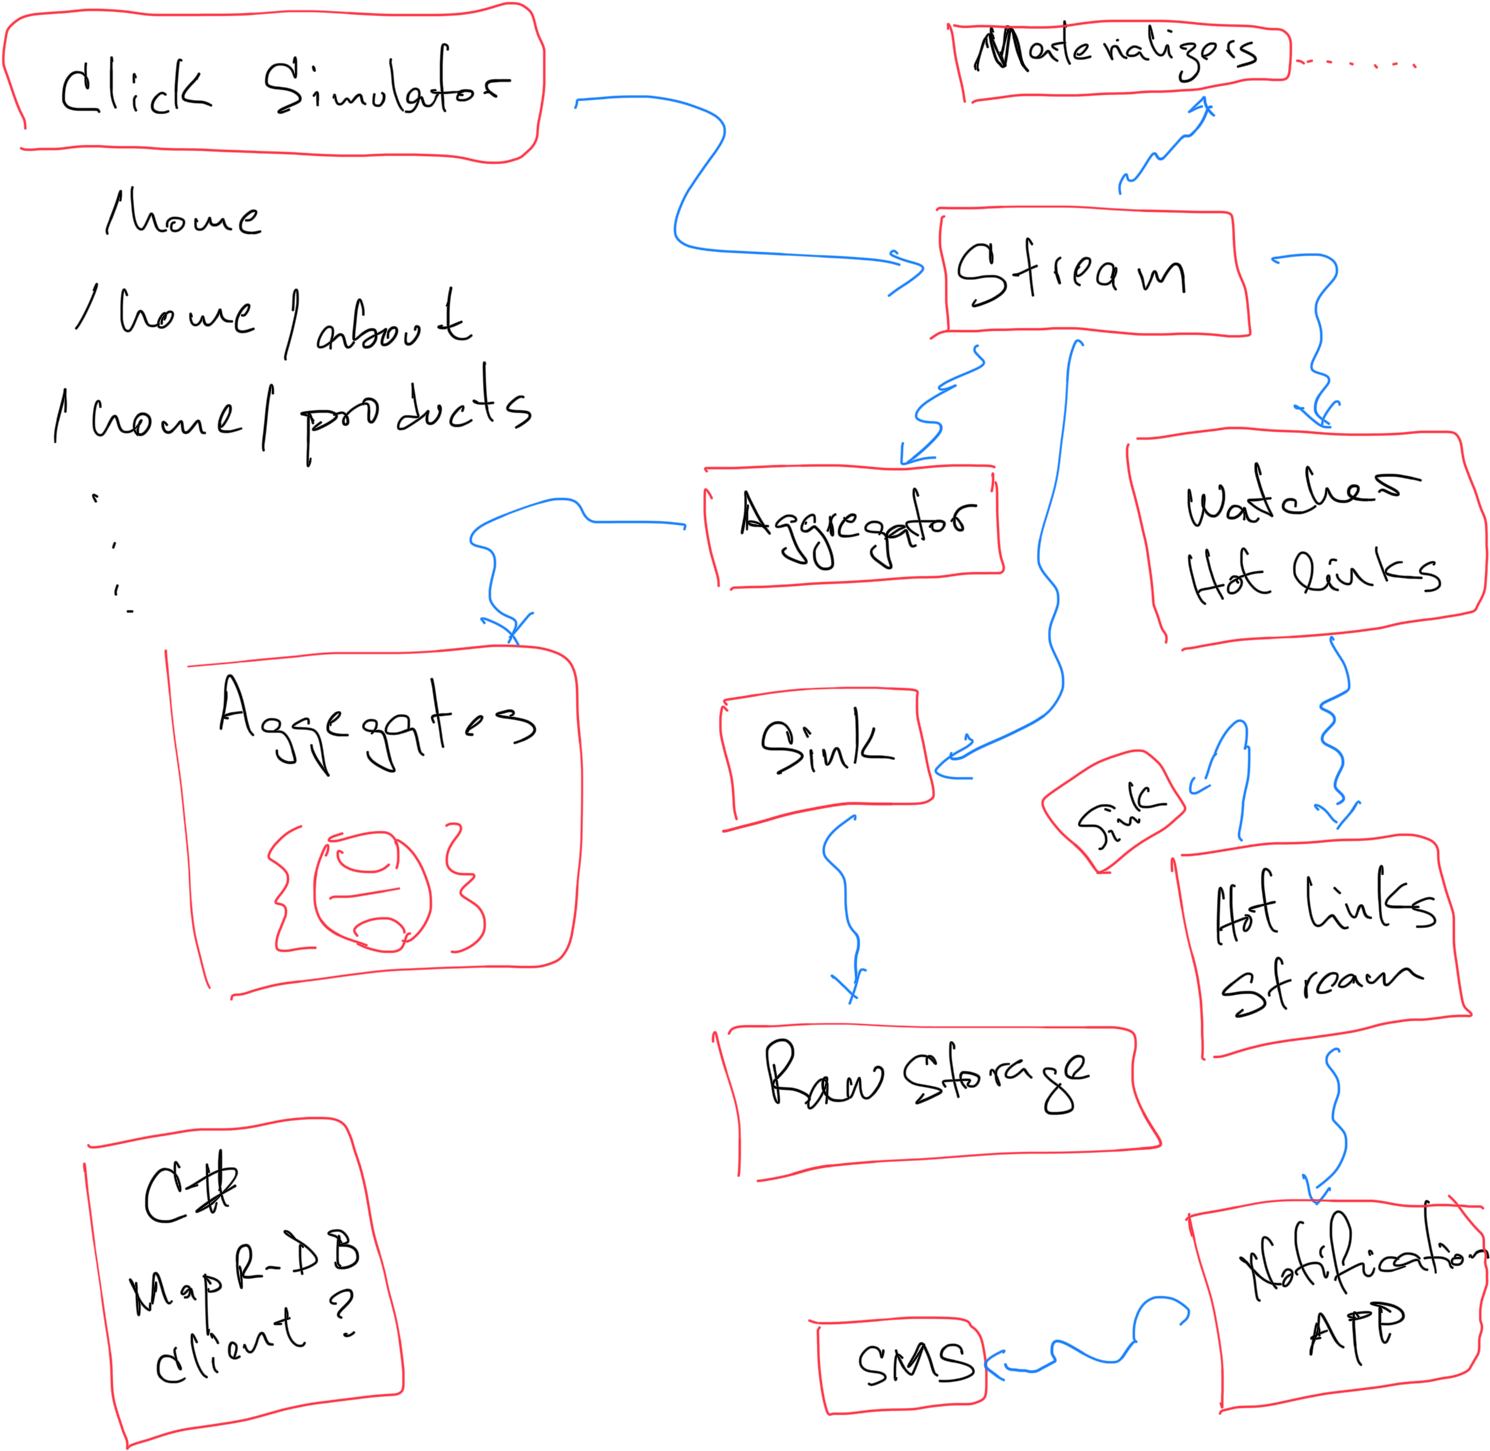 Download Hd Finally This Is An Sketch Of Some Of The Current Systems Handwriting Transparent Png Image Nicepng Com